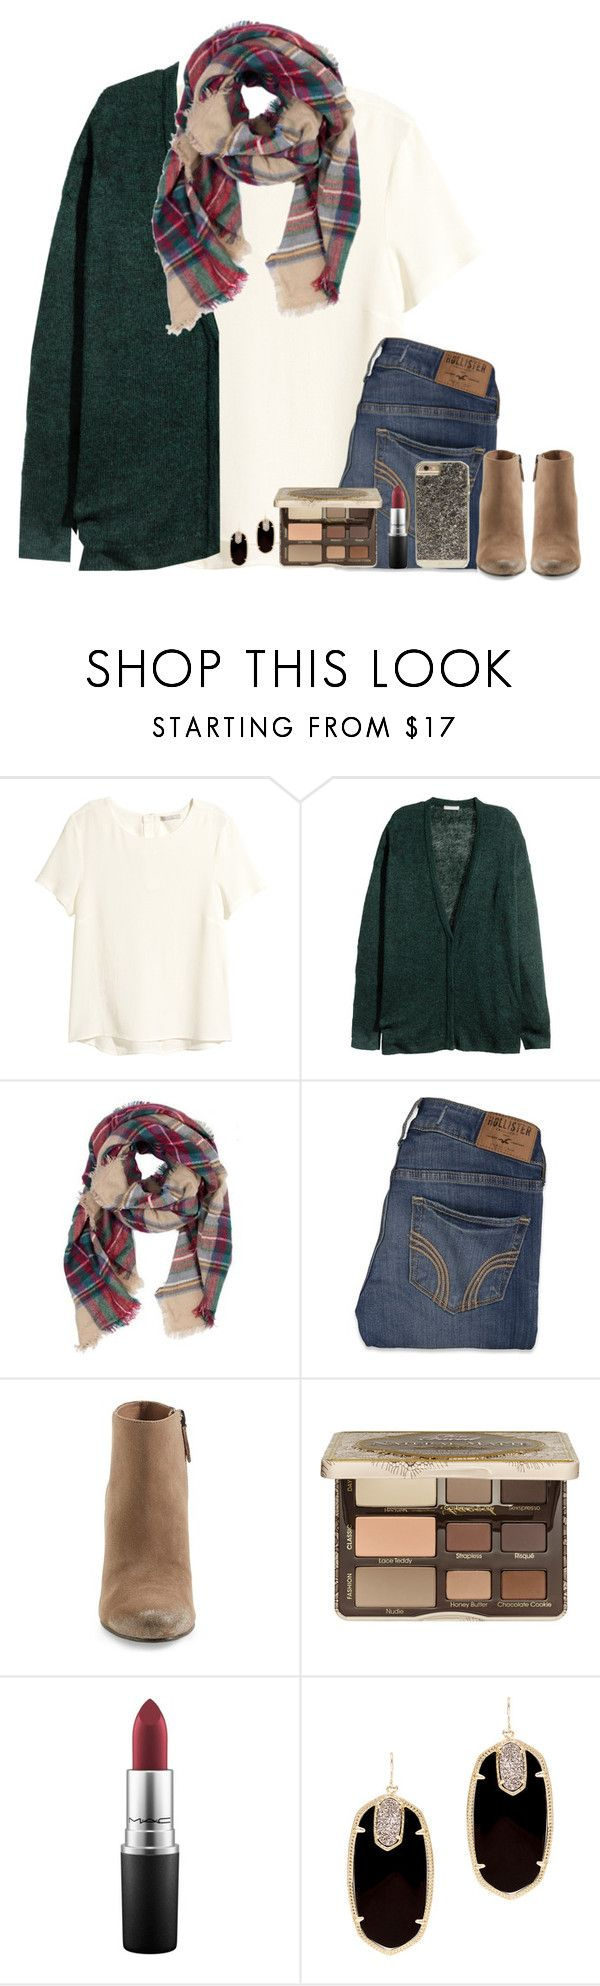 """I'm waiting on you..."" by bloom17 ❤ liked on Polyvore featuring H&M, Hollister Co., Dolce Vita, Too Faced Cosmetics, MAC Cosmetics, Kendra Scott and Case-Mate"